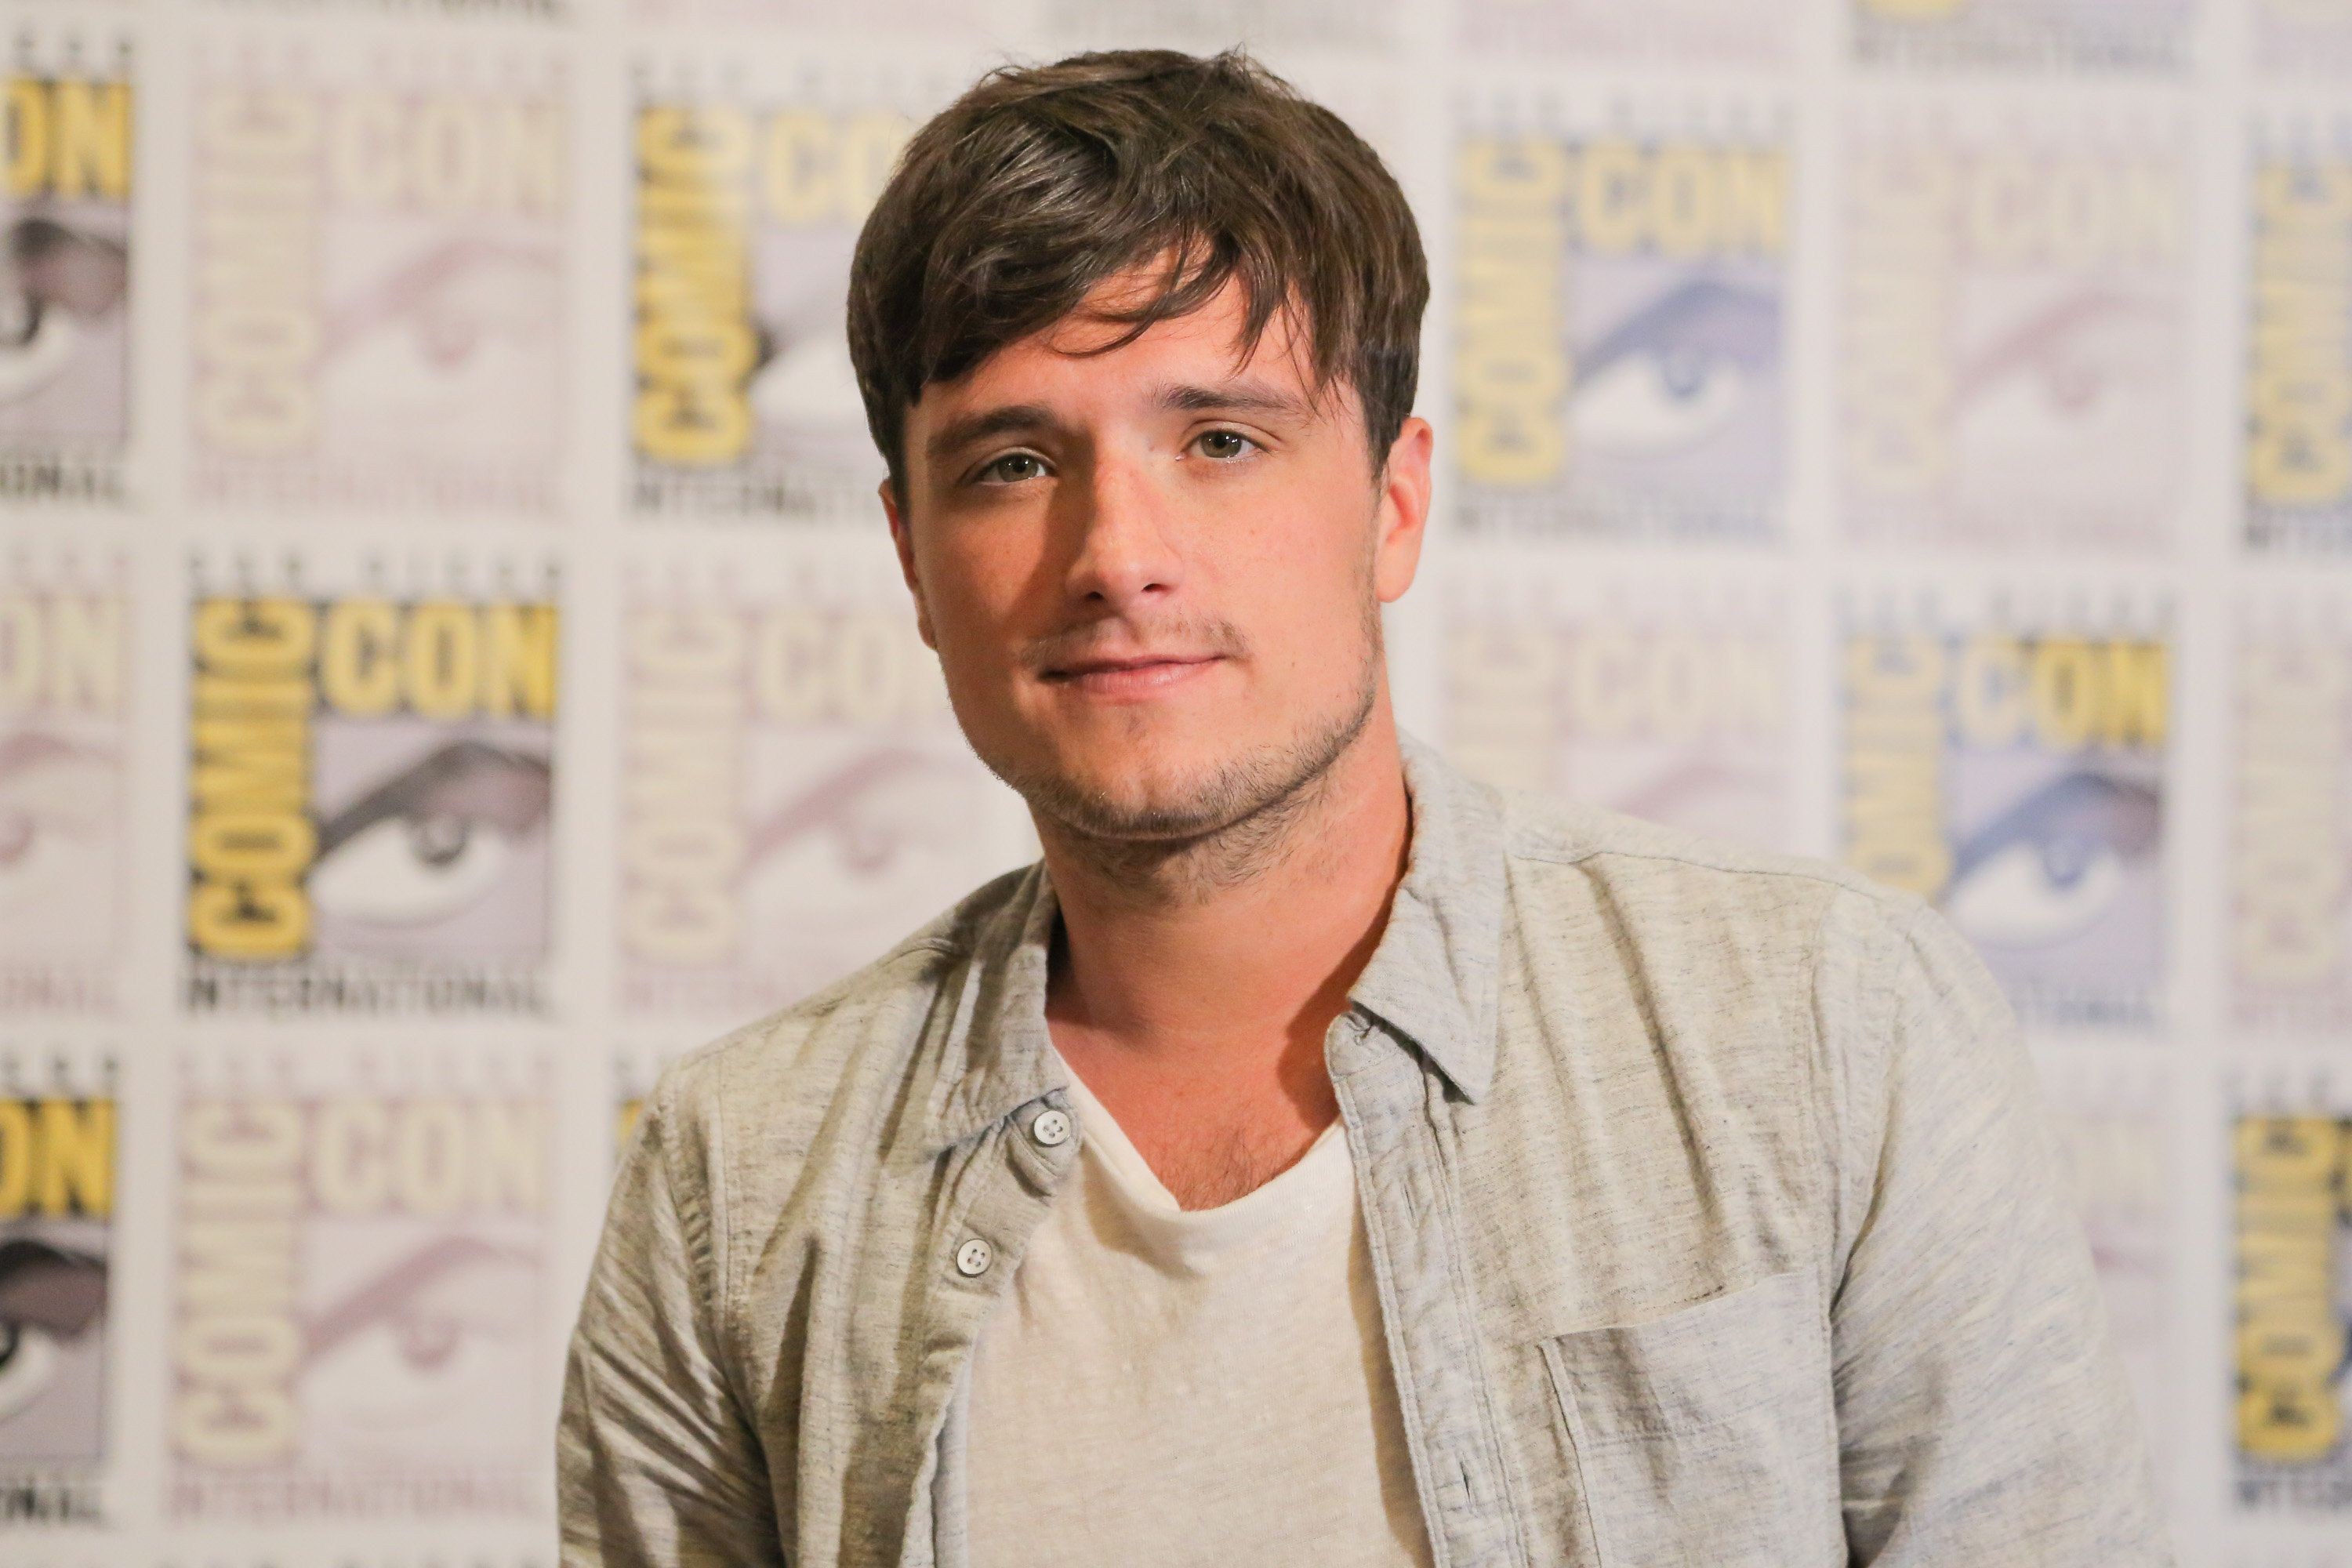 SAN DIEGO, CA - JULY 09:  Actor Josh Hutcherson attends Comic-Con International on July 9, 2015 in San Diego, California.  (Photo by Chelsea Lauren/WireImage)